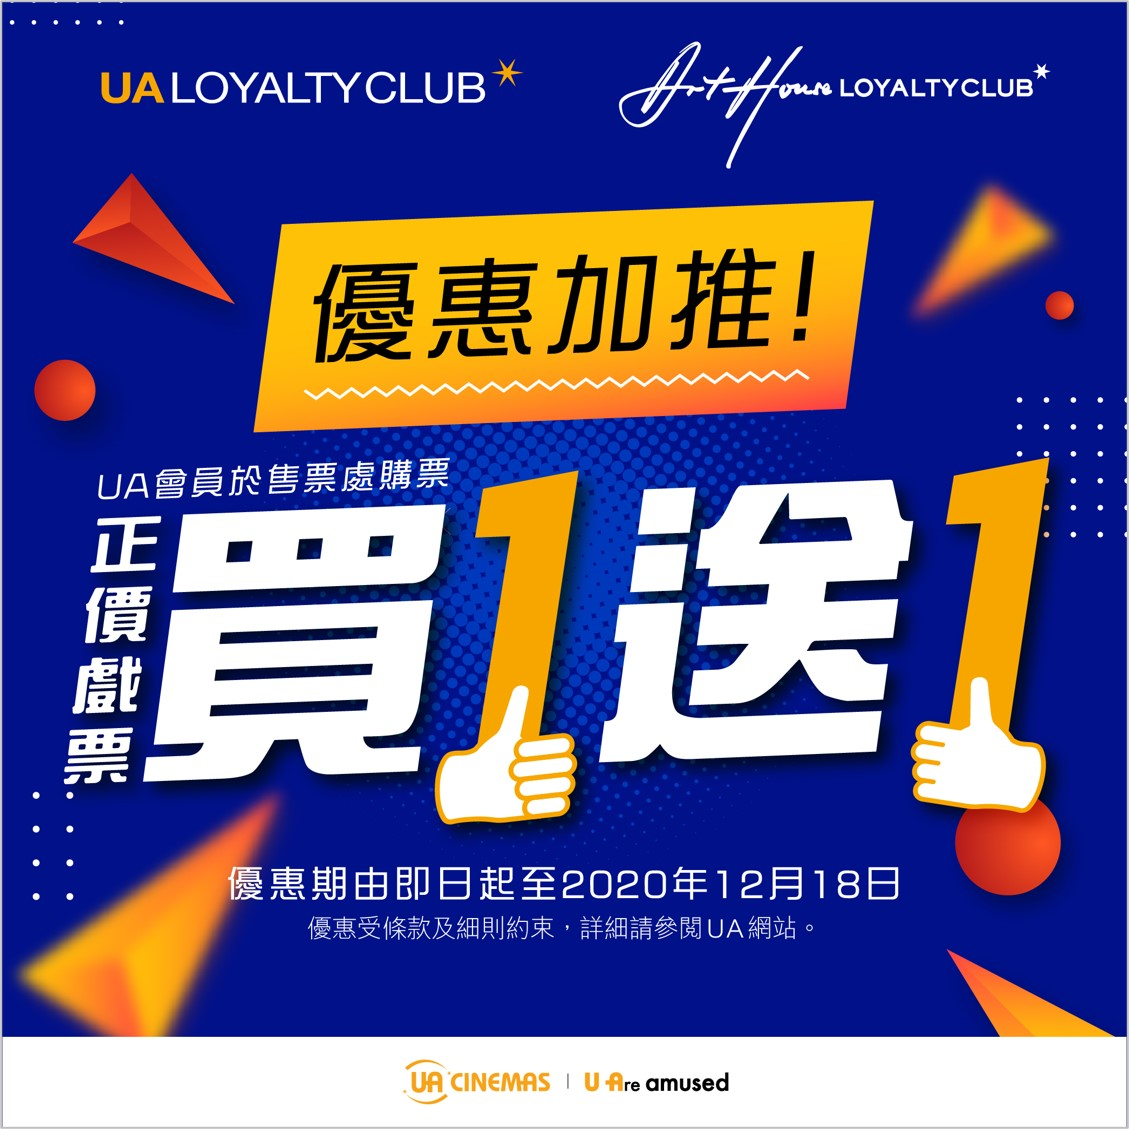 Terms and conditions of UA Member-exclusive Buy 1 Get 1 Free Offer for Regular-priced Tickets